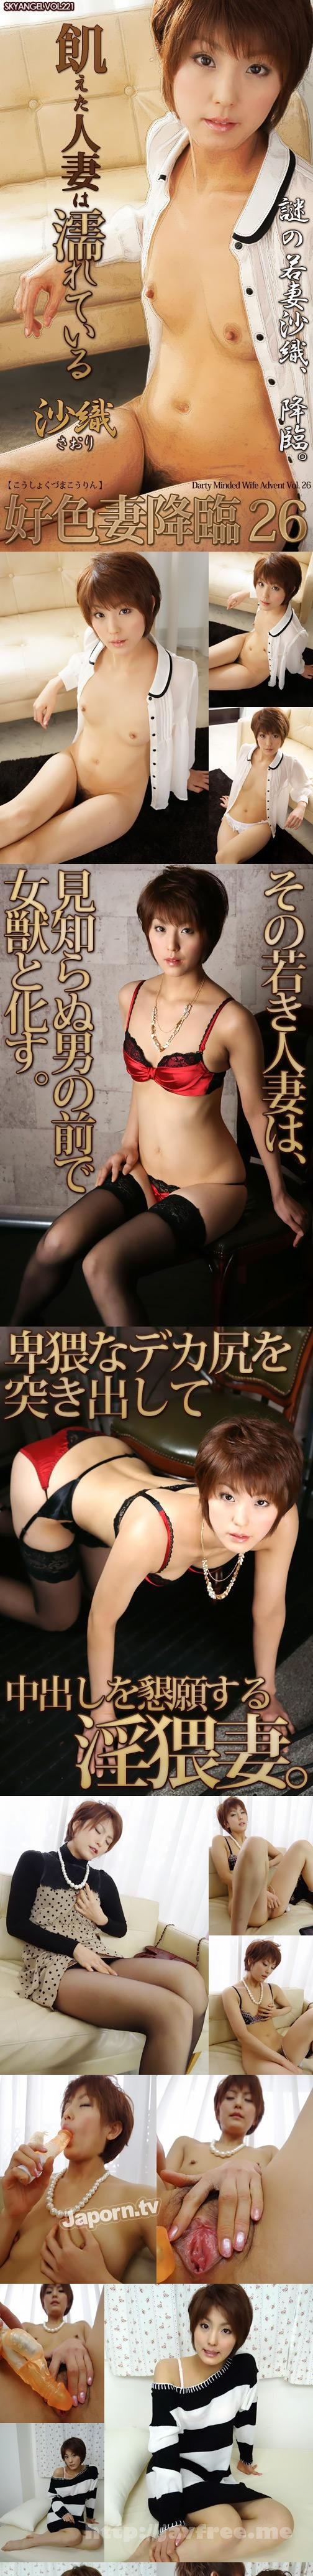 [SKYHD-075] Sky Angel Blue Vol.75 : Saori - image SKYHD-075_1 on https://javfree.me